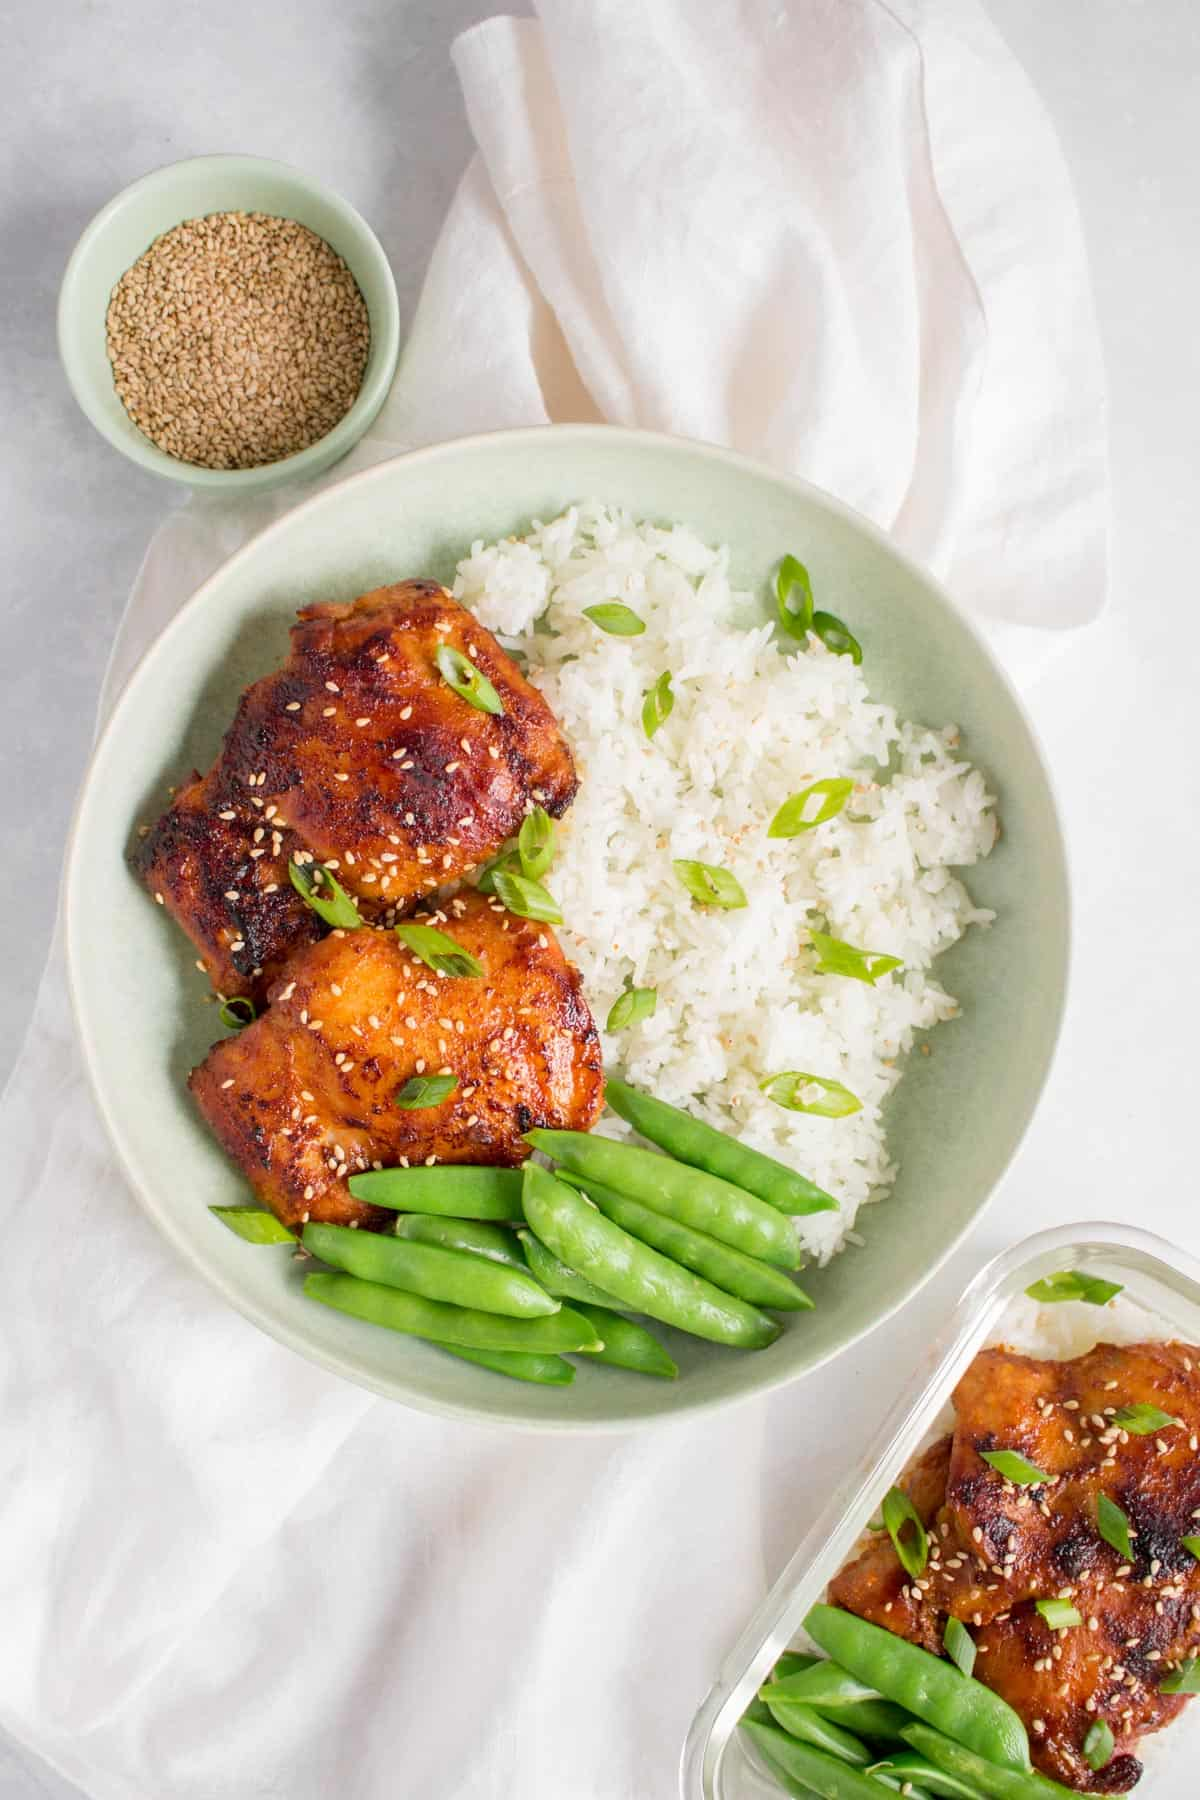 A plate of chicken thighs with snap peas and rice.